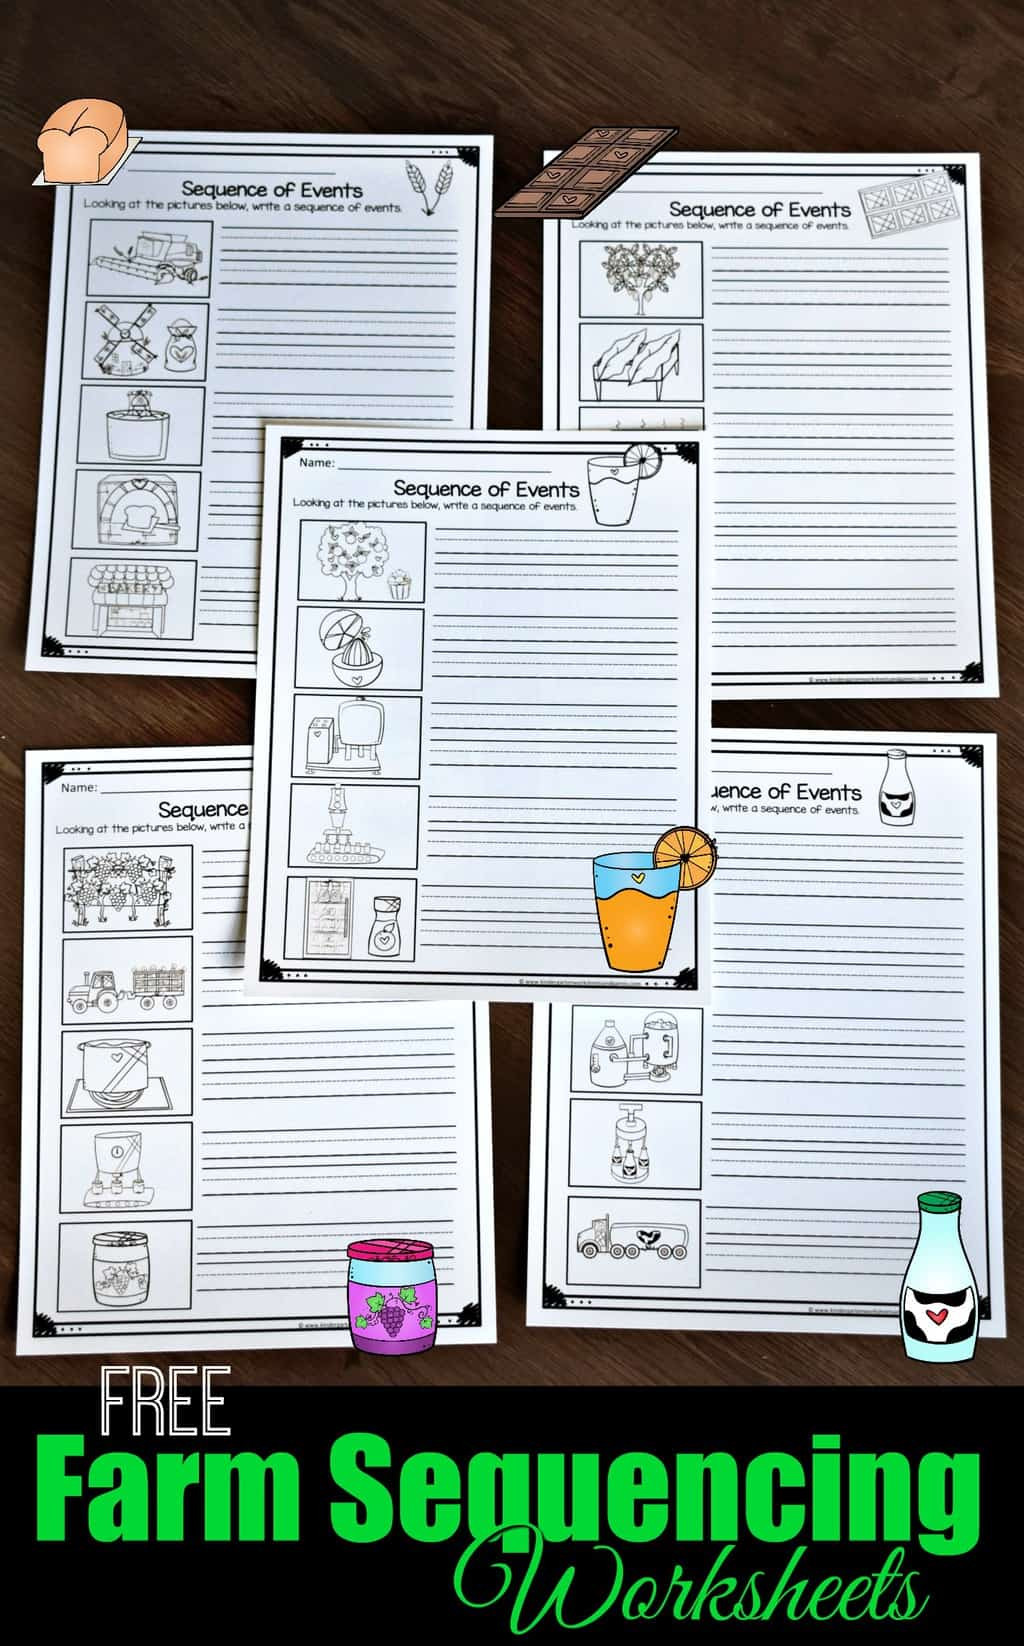 Printable Sequencing Worksheets Free Farm Sequencing Worksheets